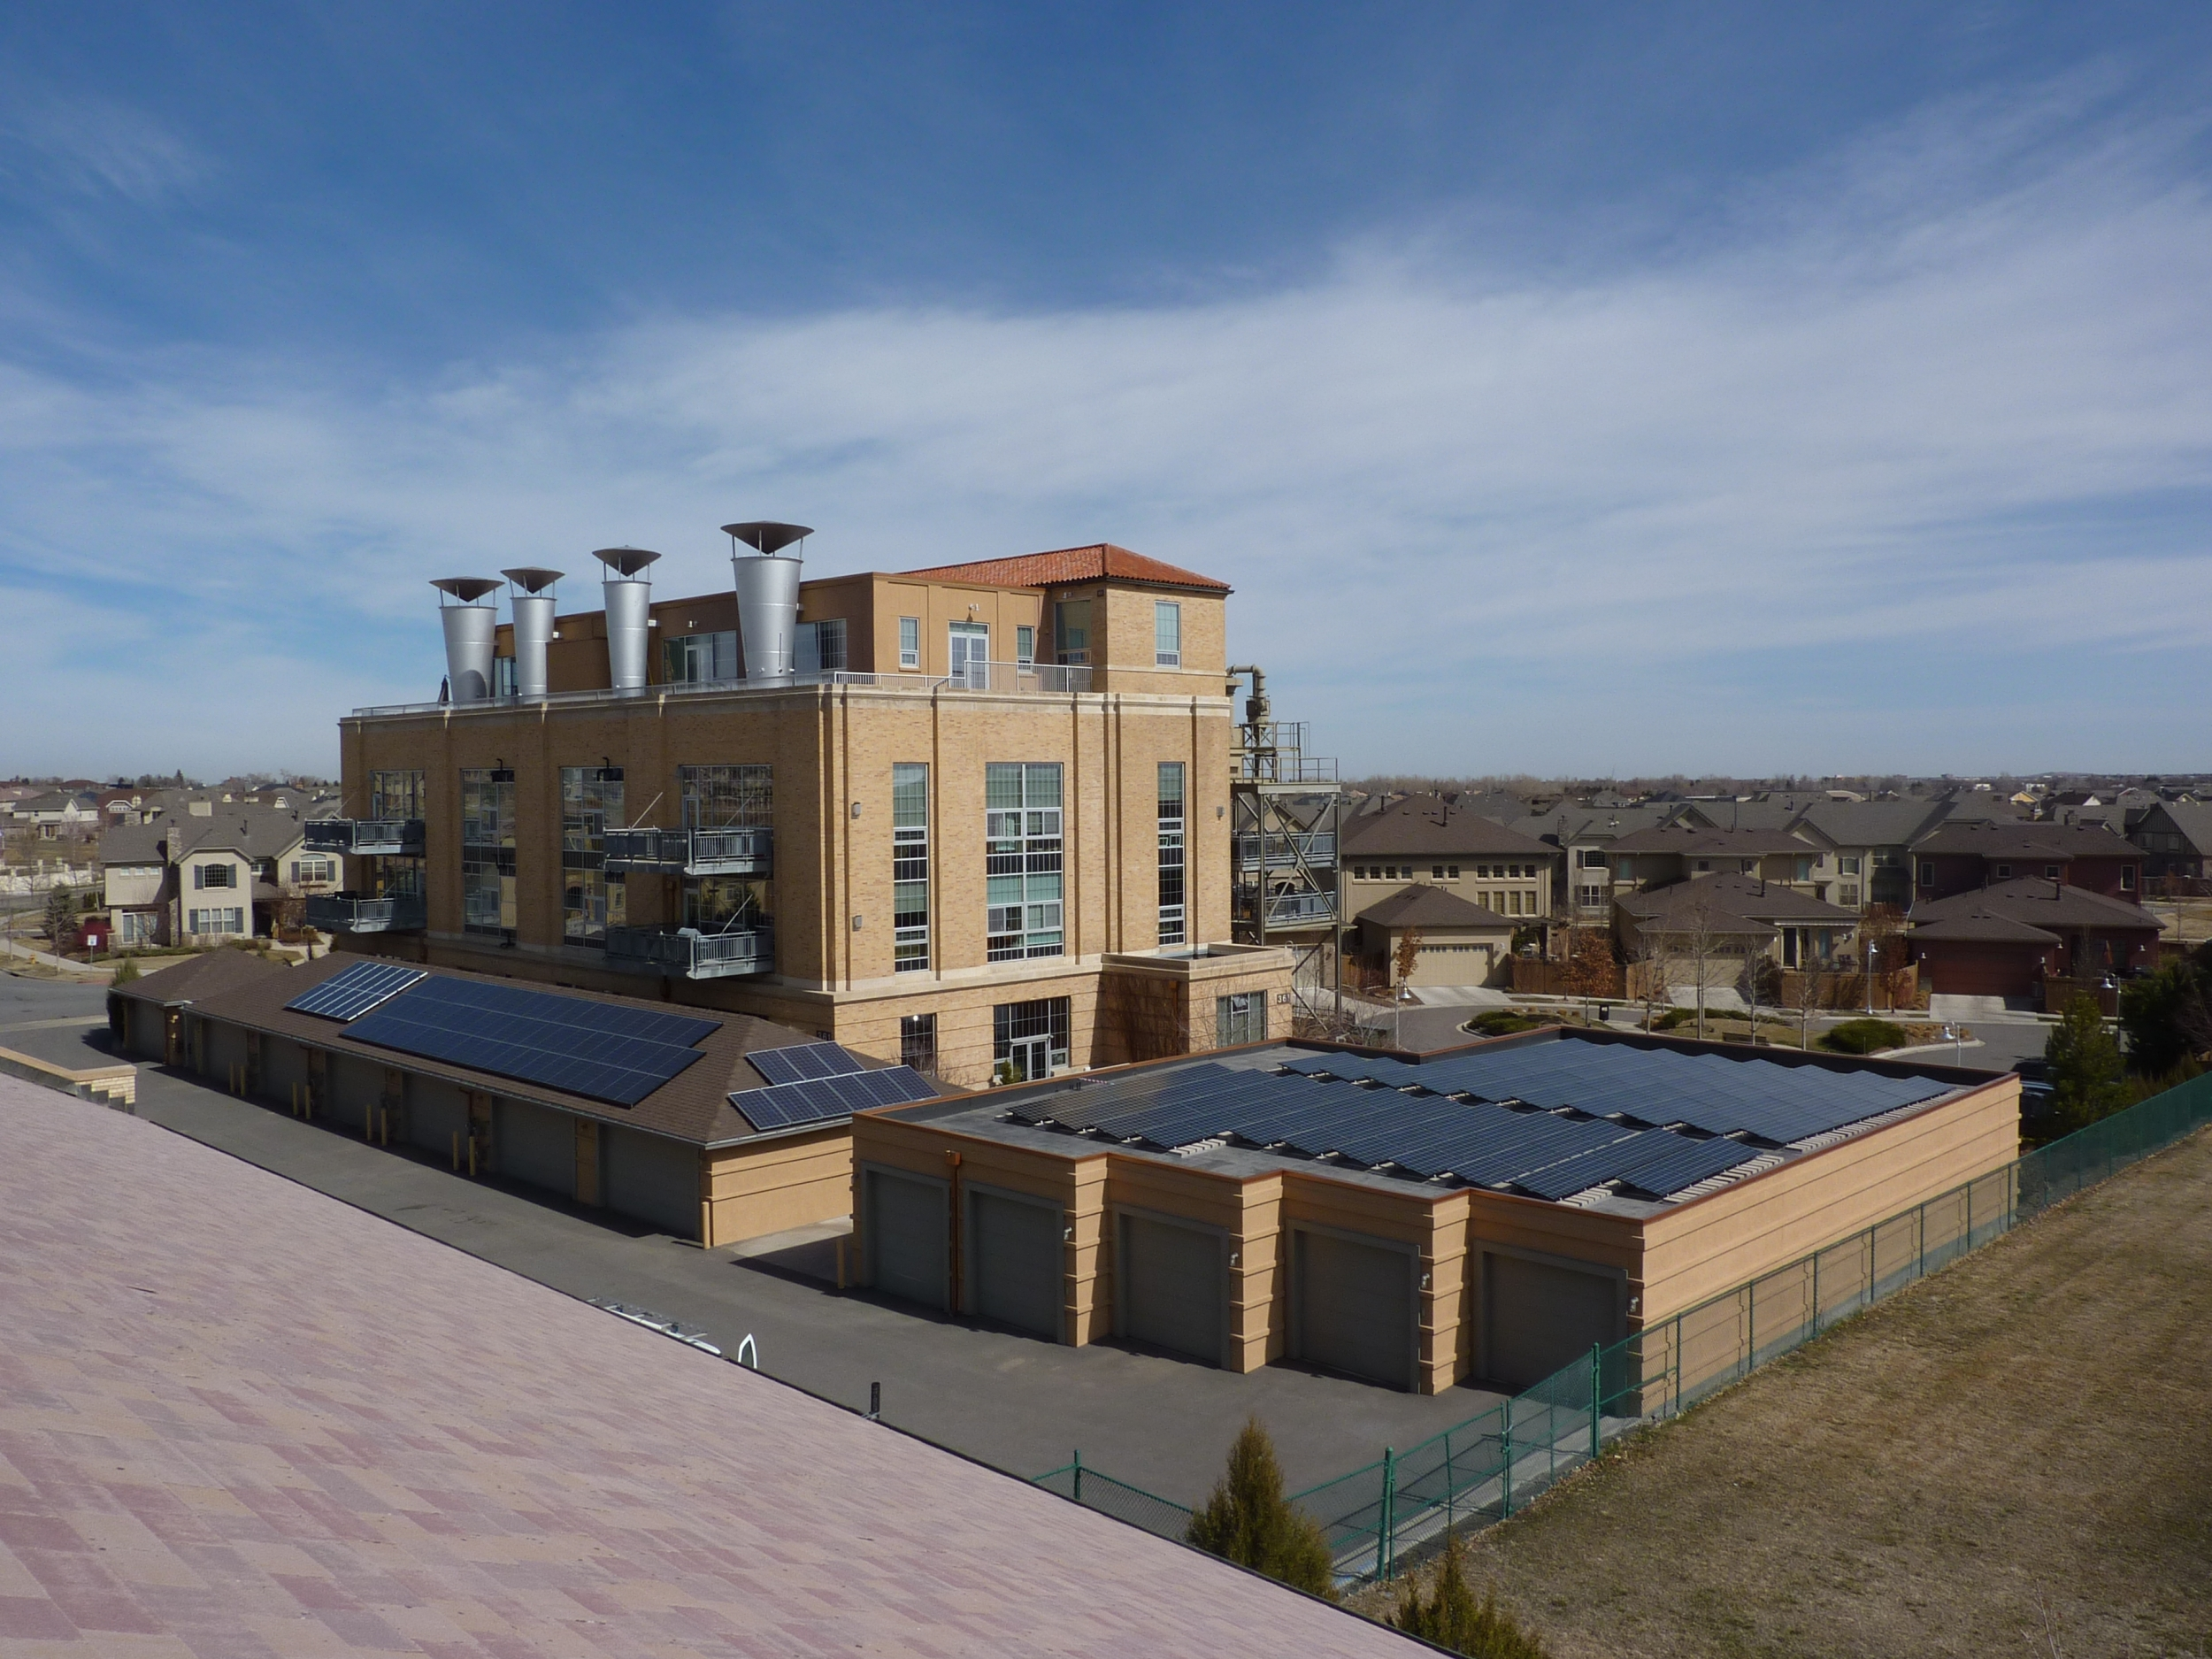 Southwest view showing solar panels on garage roofs